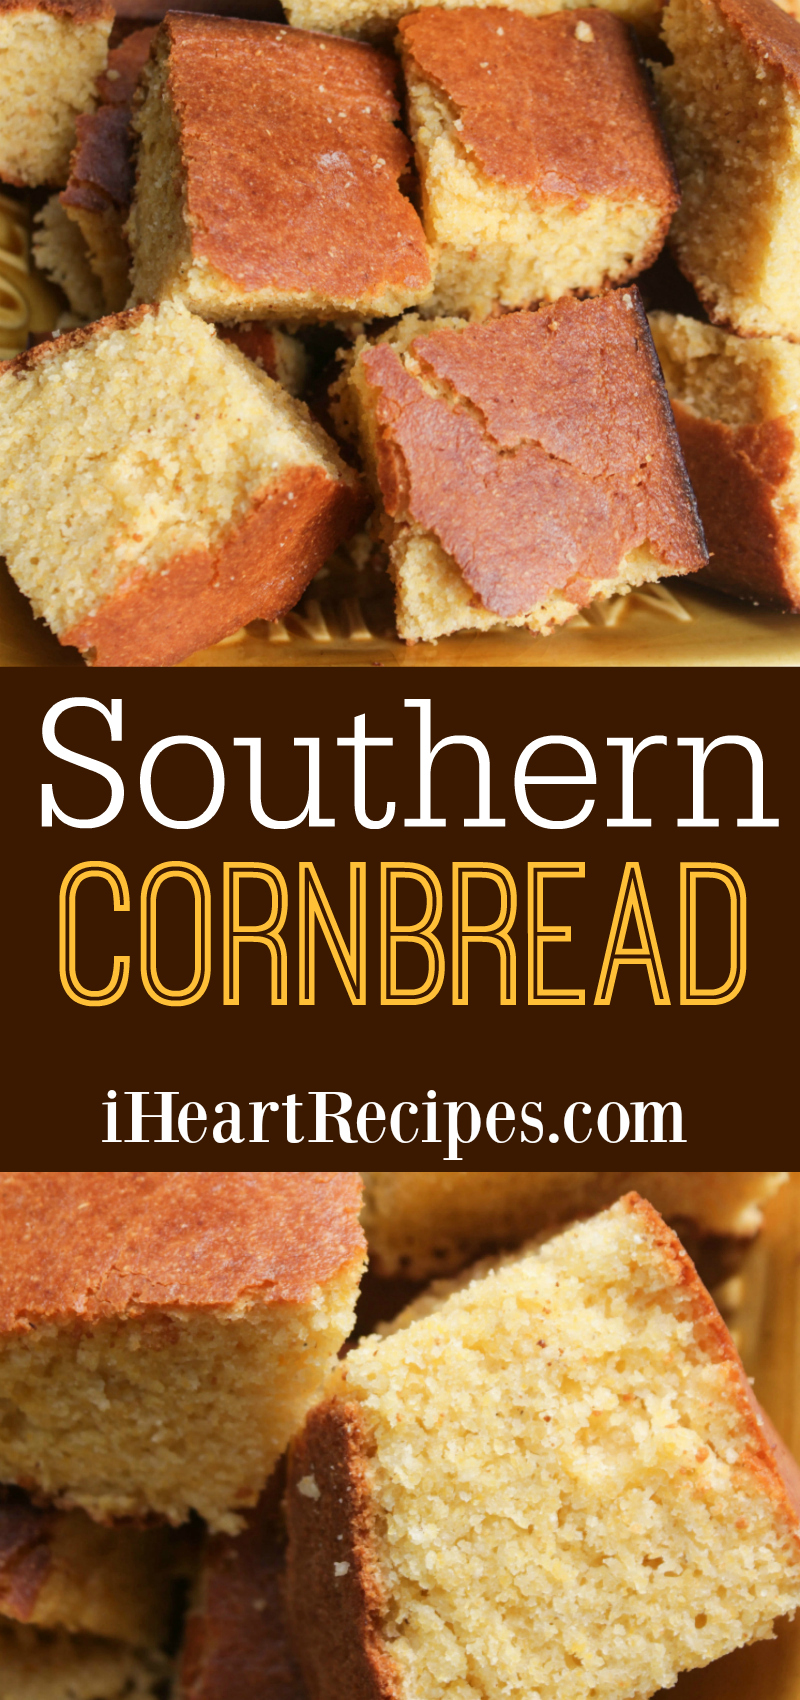 Classic Southern Cornbread Recipe, perfect as a side with any classic comfort food and southern food recipe!